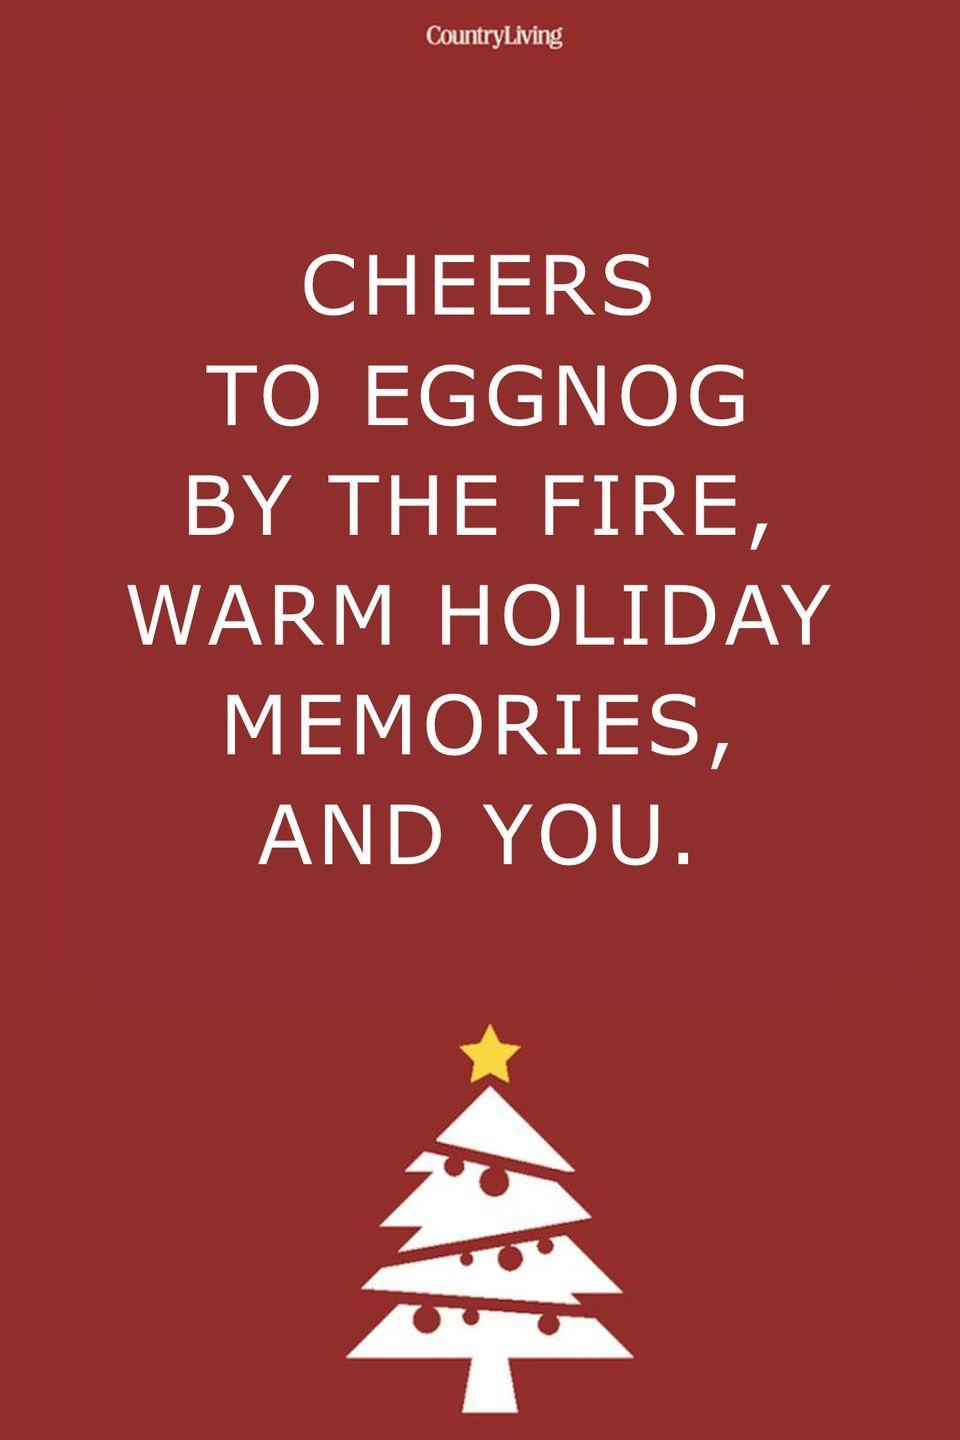 <p>Cheers to eggnog by the fire, warm holiday memories, and you. </p>